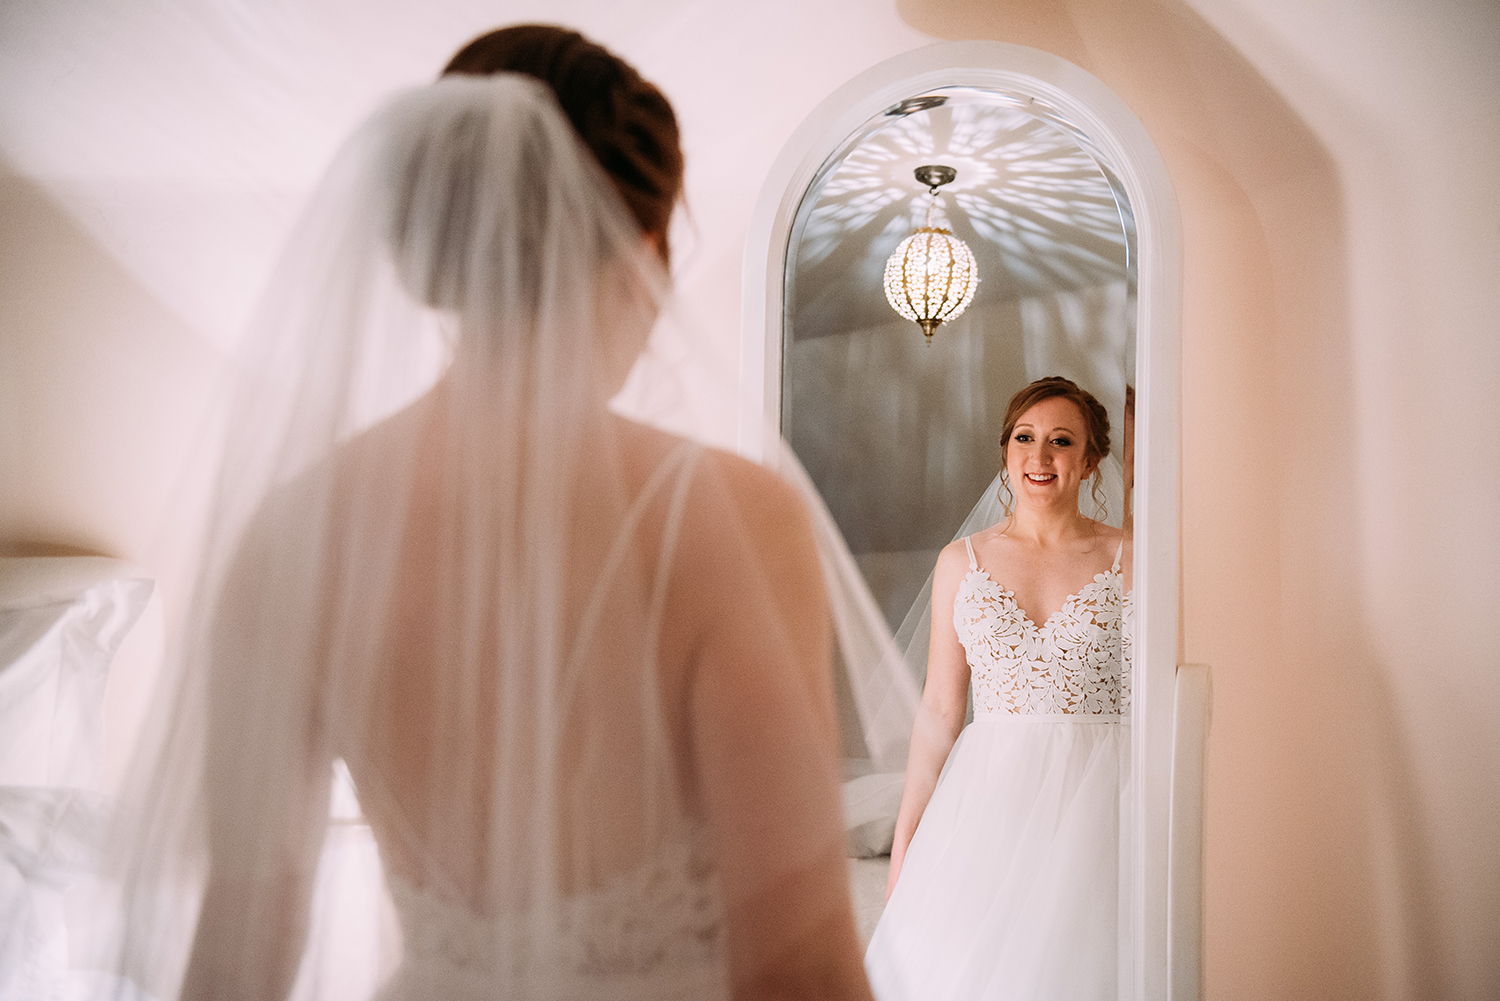 bride in dress looking in the mirror